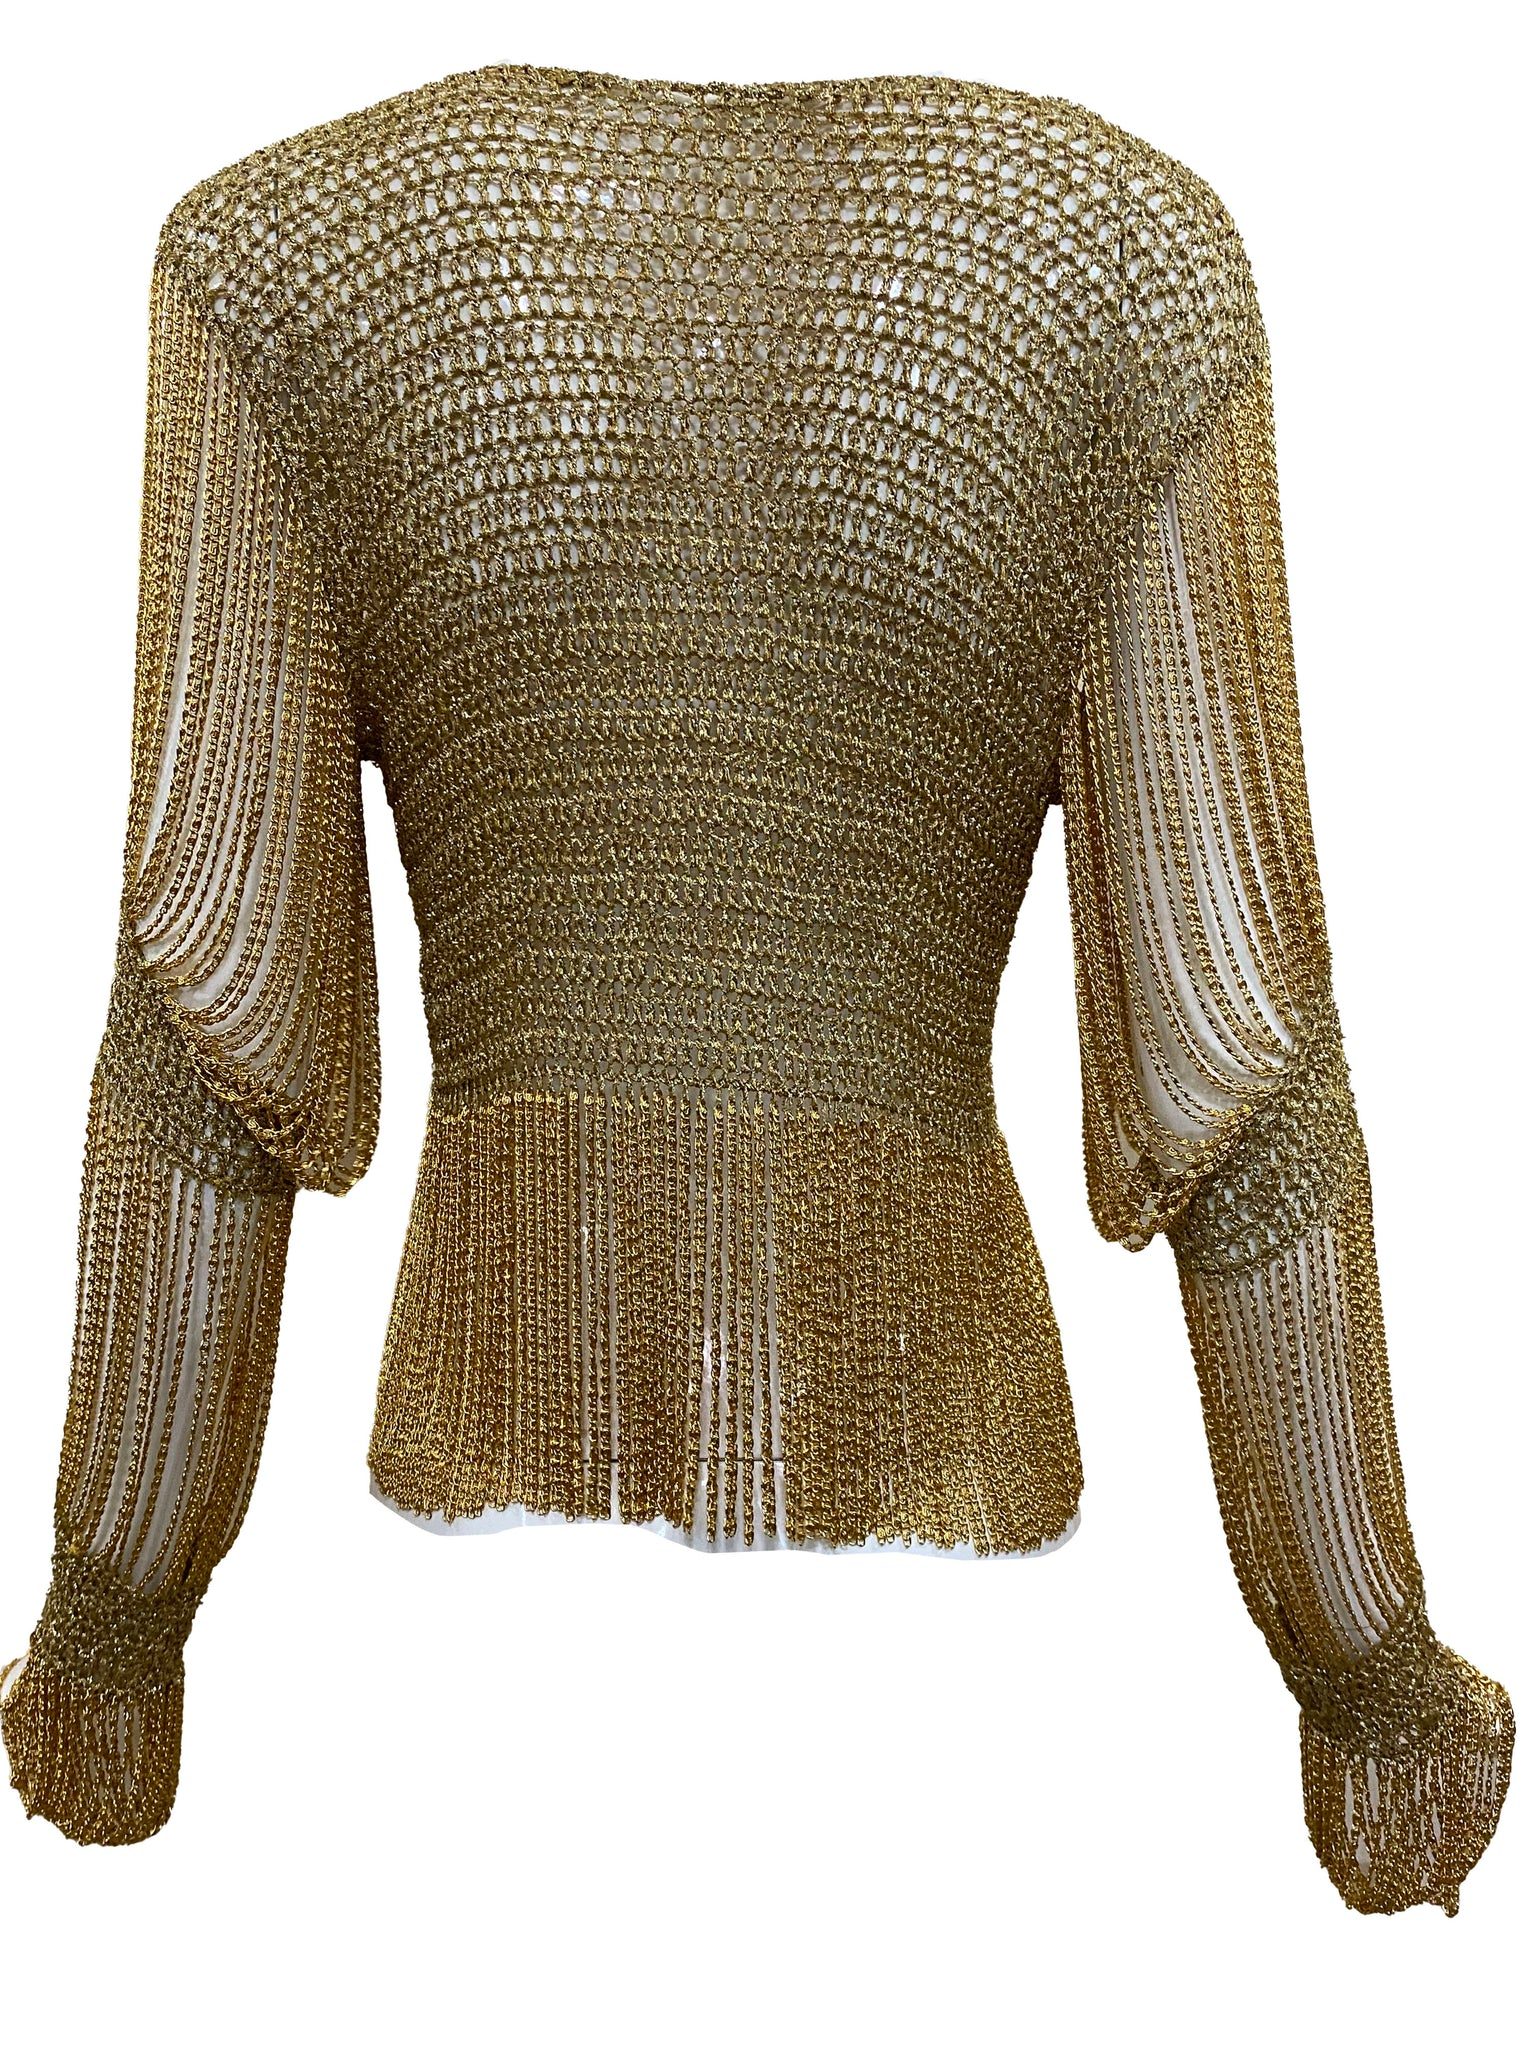 LORIS AZZARO 70s gold Crochet Cardigan with Metal Fringe BACK 4 of 5